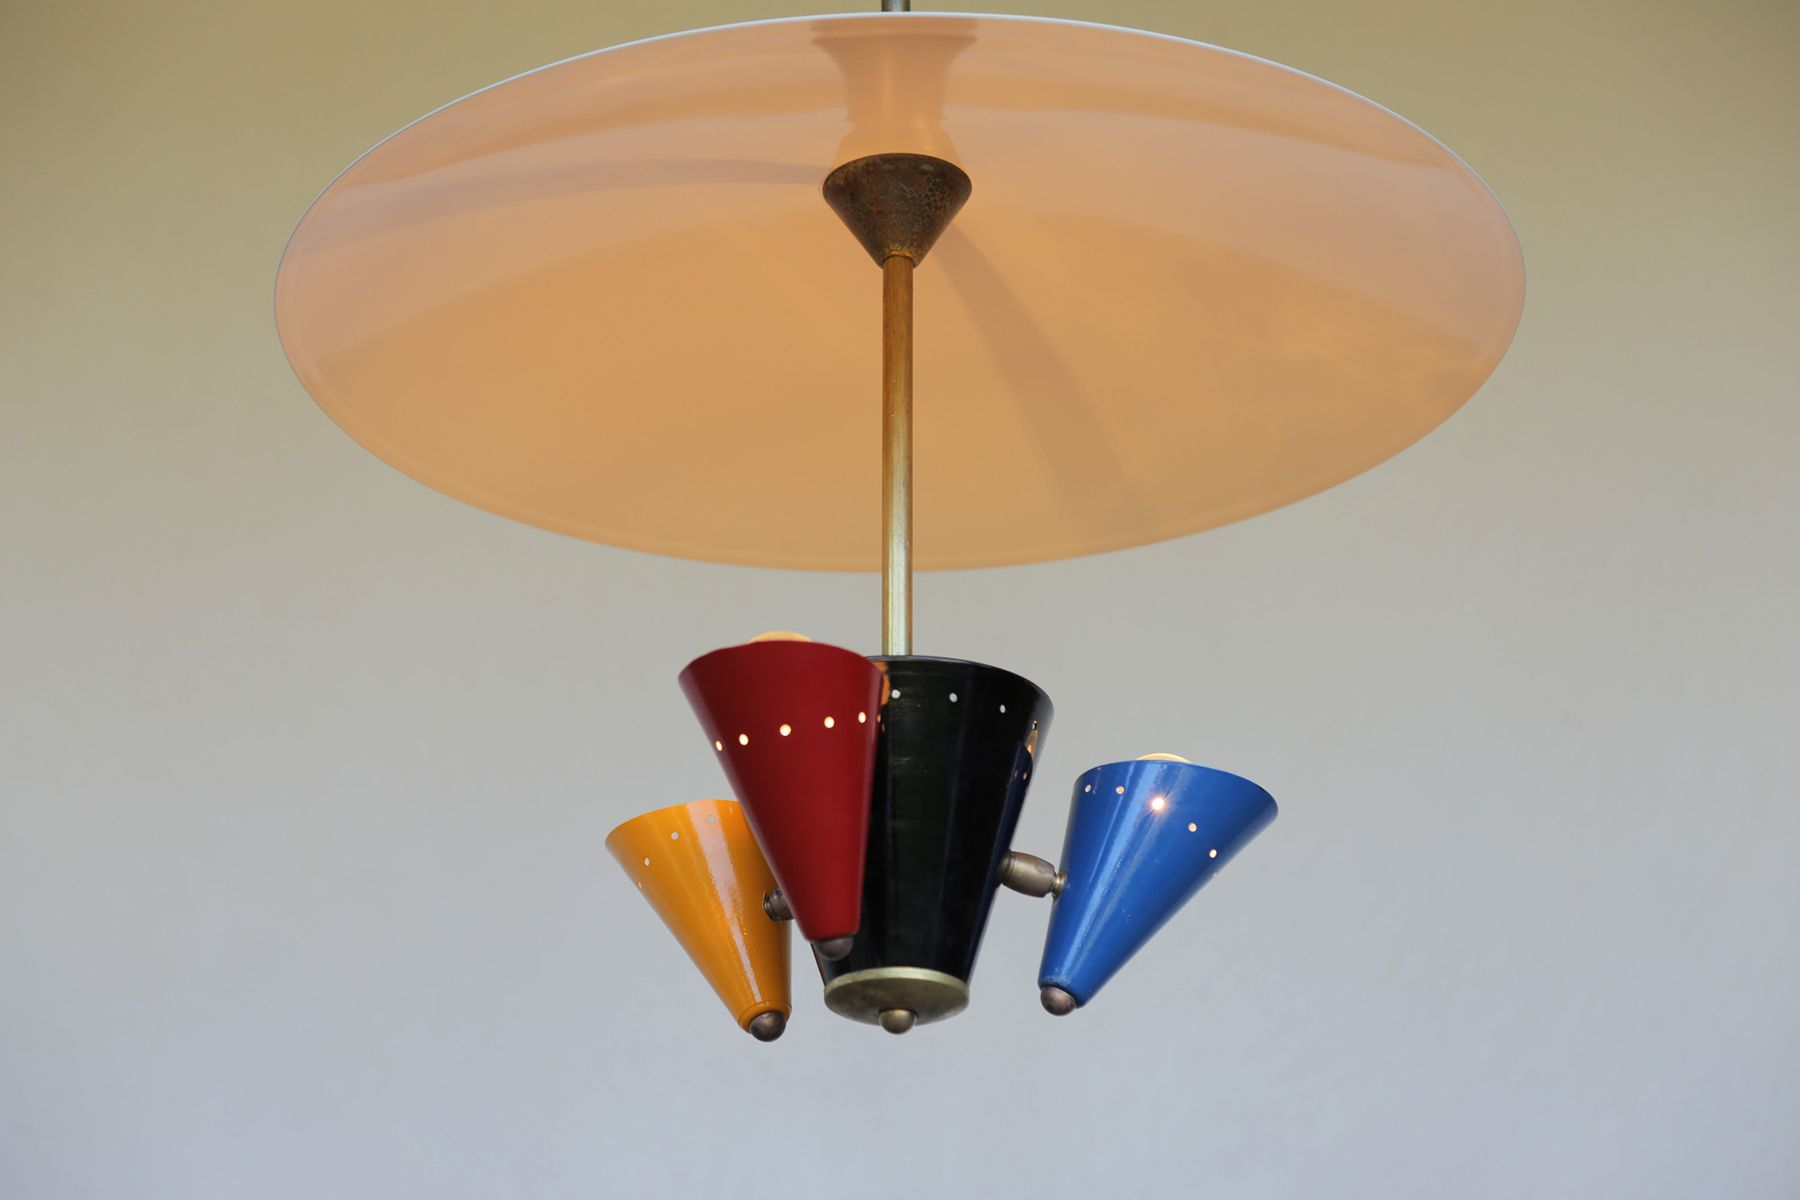 Vintage italian pendant light 1960s for sale at pamono - Italian pendant lights ...